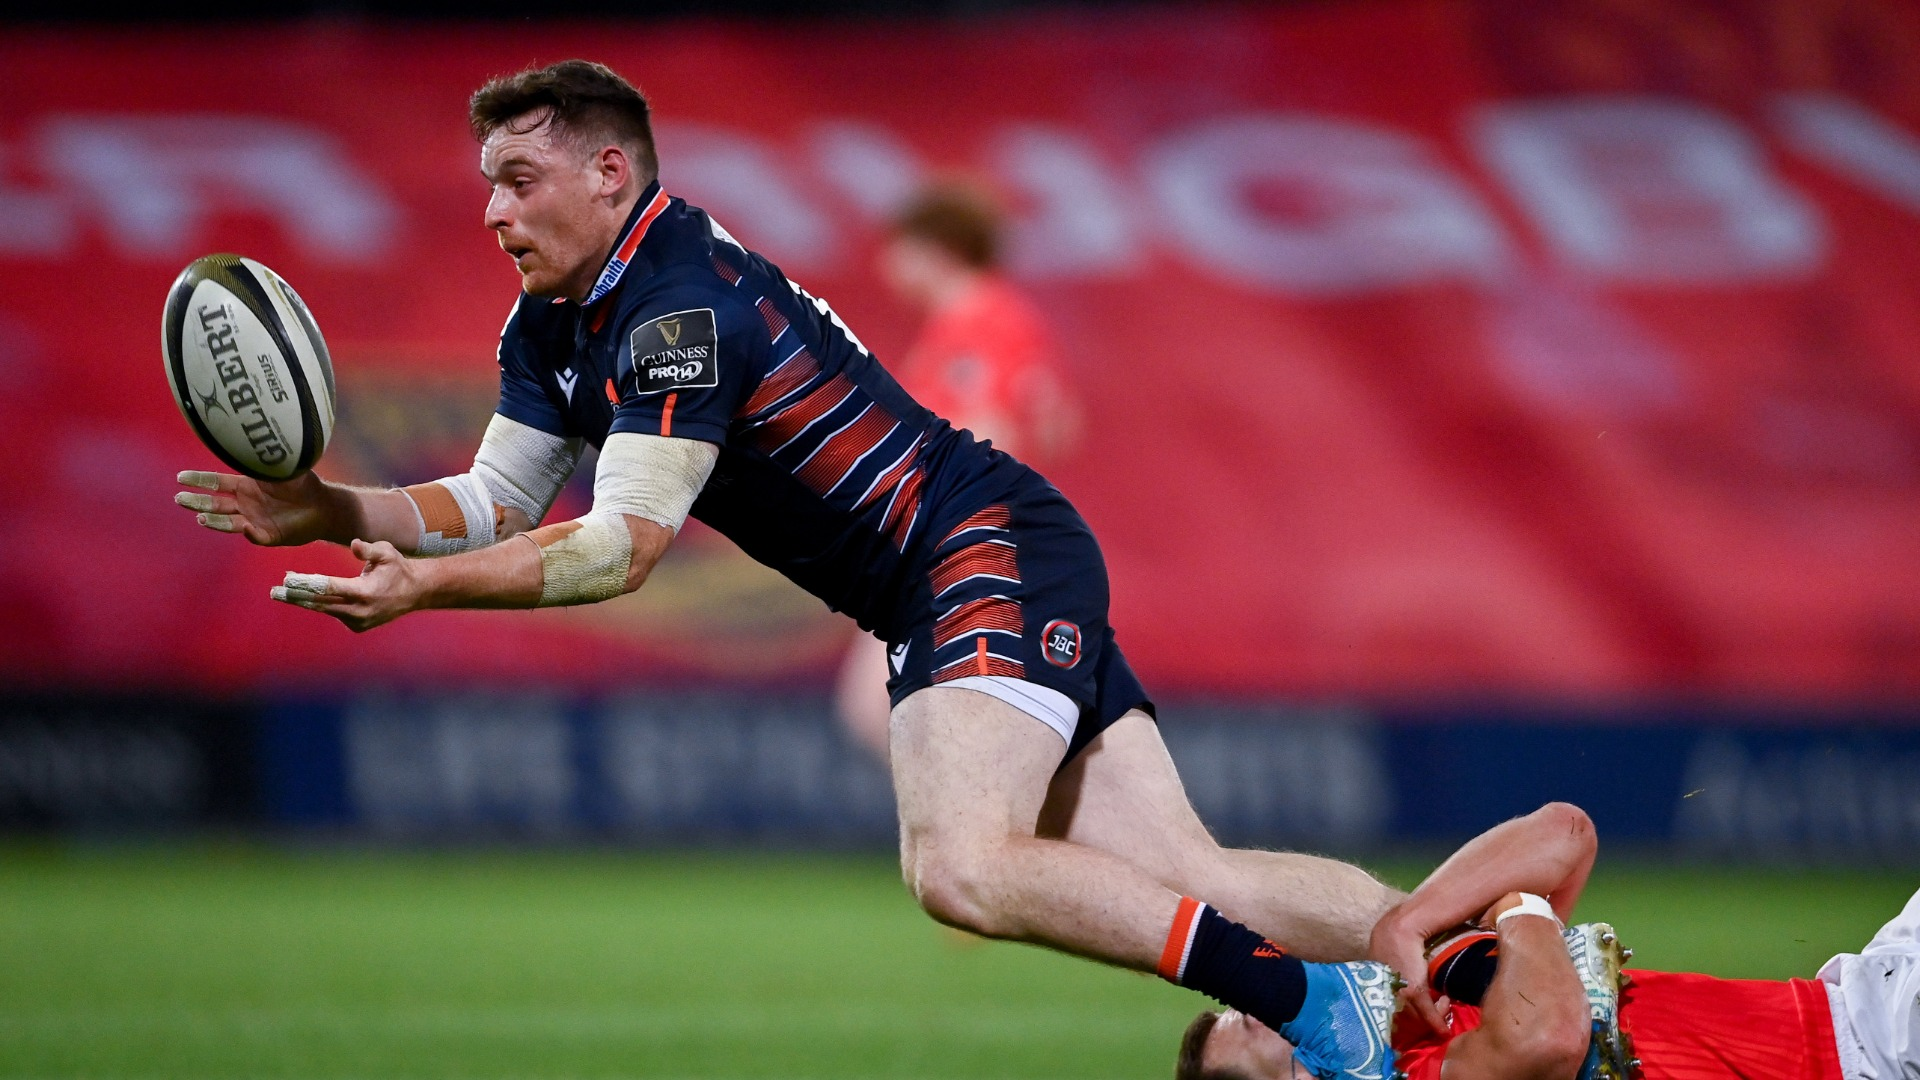 Six Nations 2021: Scotland call up uncapped duo and Rae for Wales clash